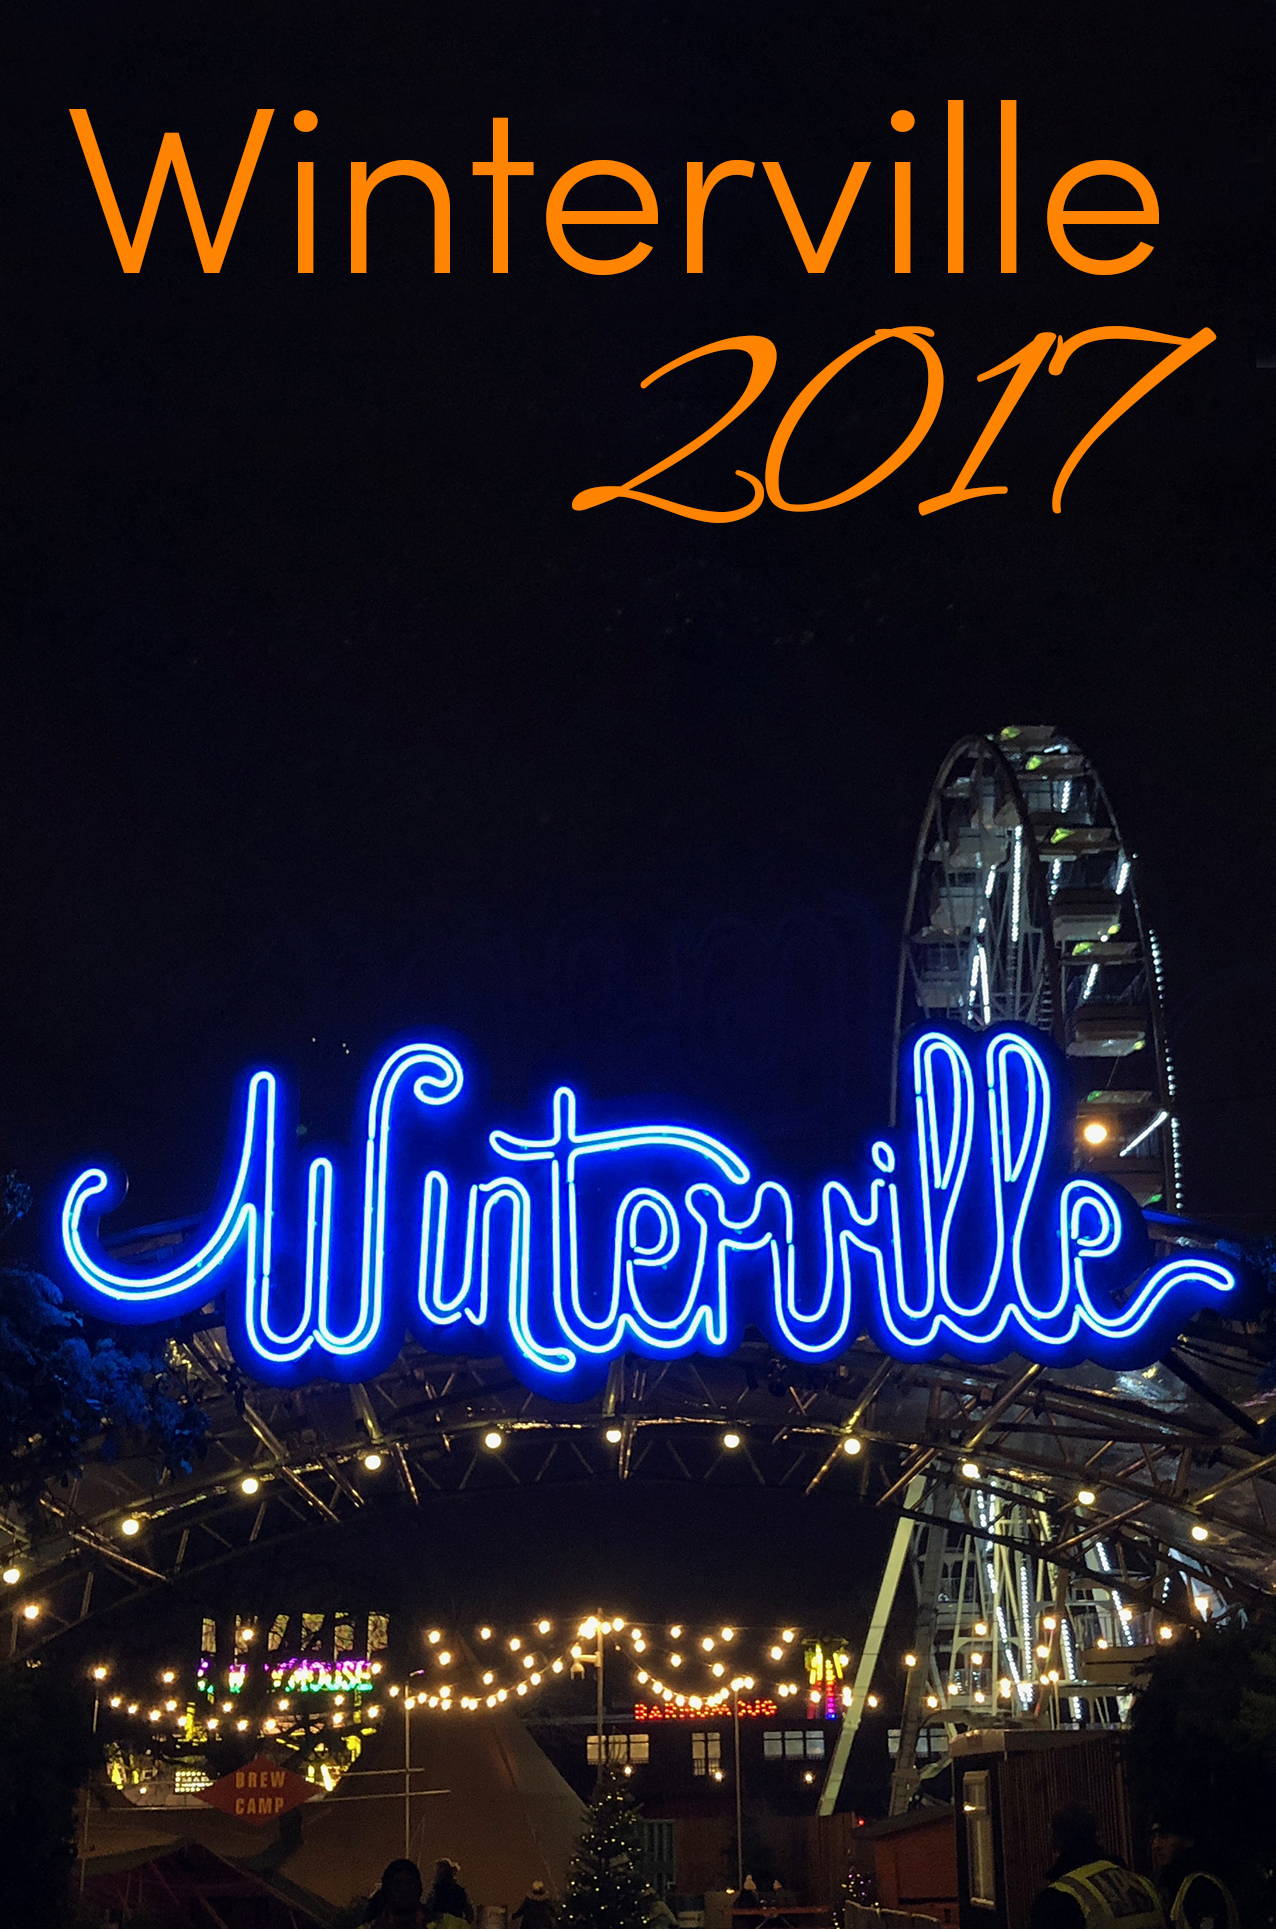 Pinterest share image: view of the Winterville neon sign in the night sky with the big wheel behind it with blog title one top